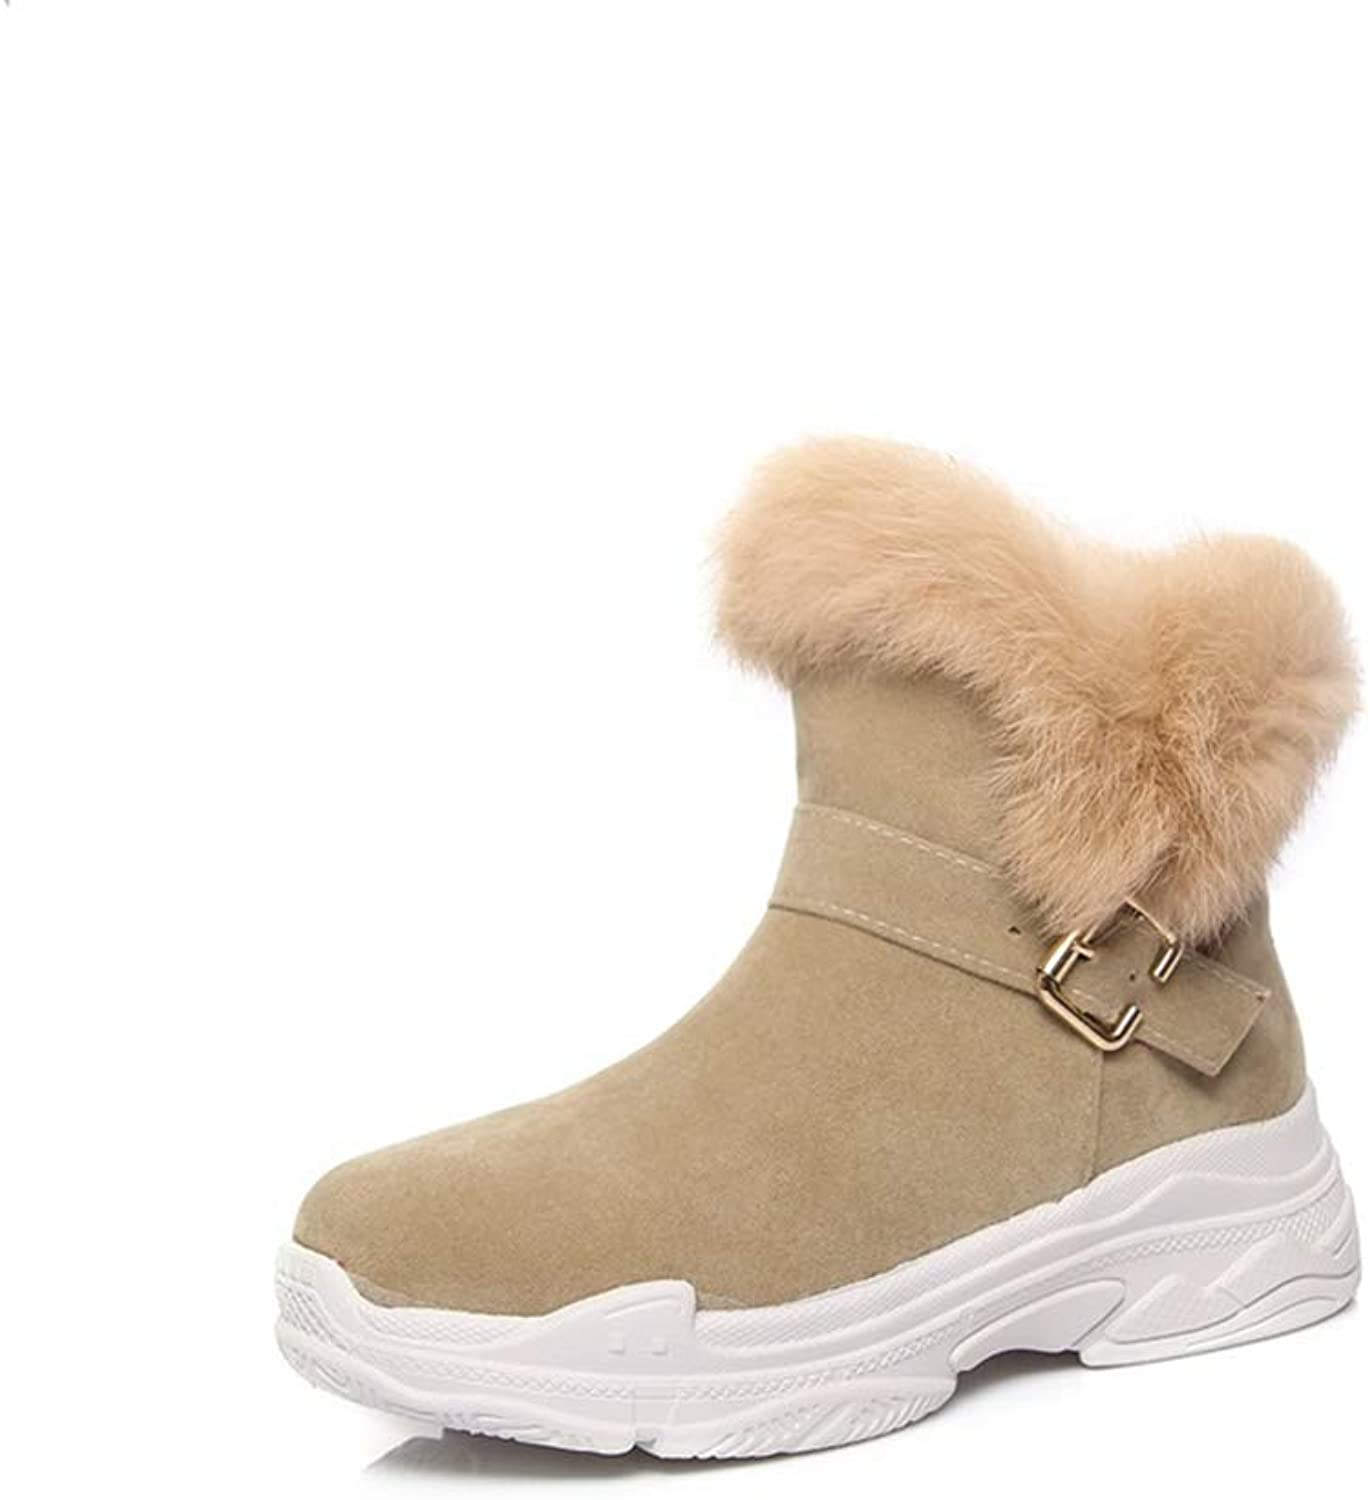 T-JULY Women Winter Warm Snow Boots New Wedges Platform Round Toe Flock Slip-On Buckle Ankle shoes